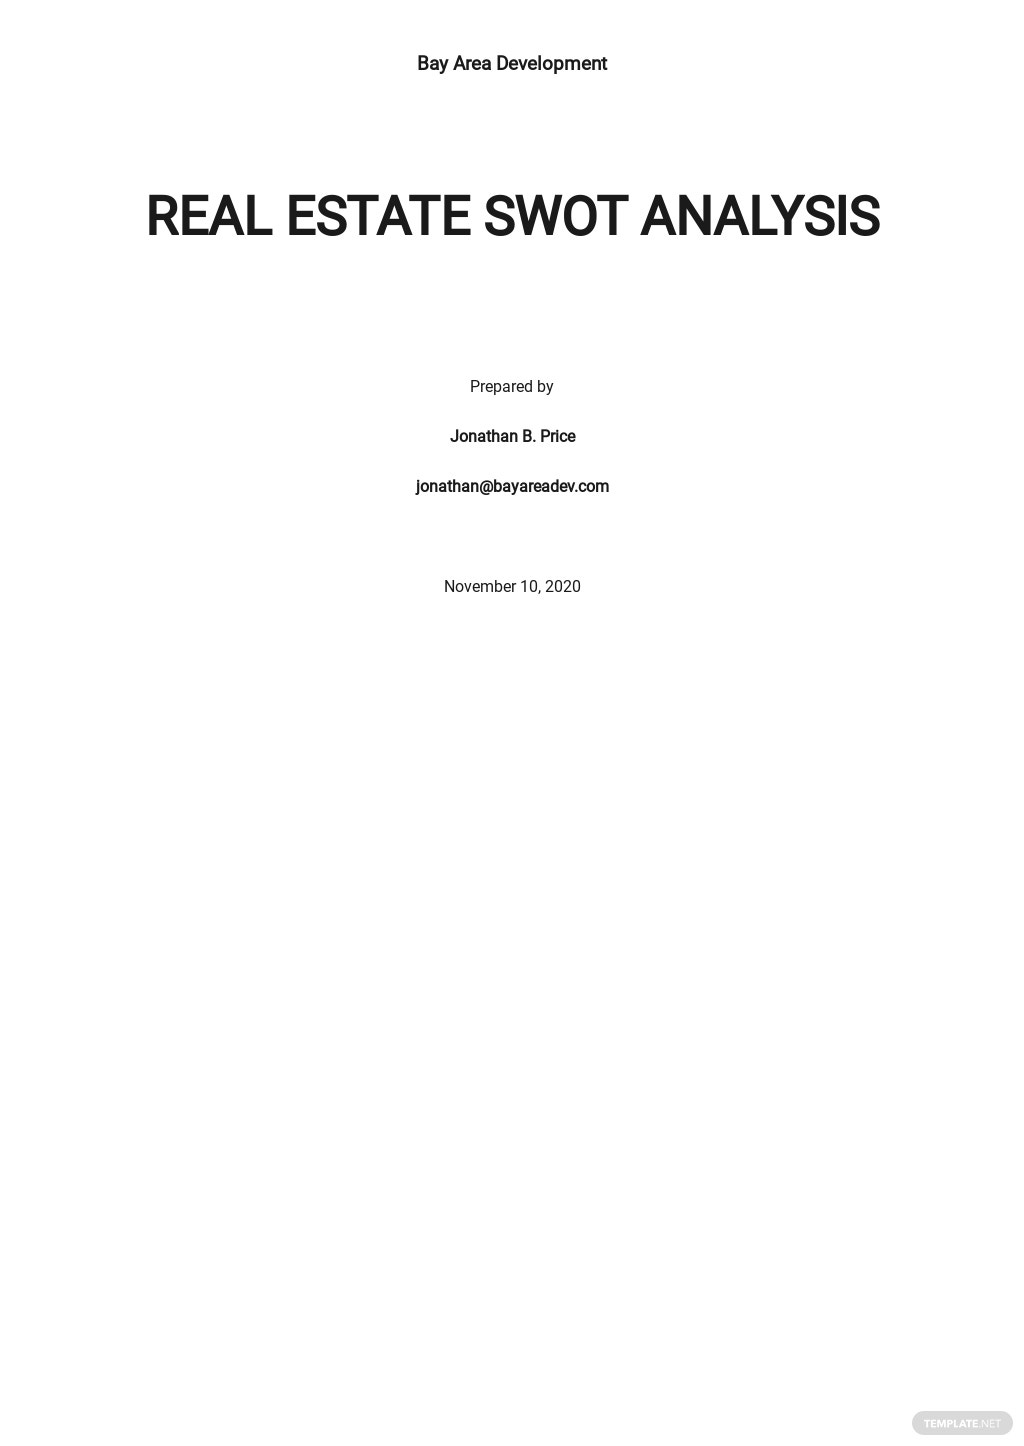 Real Estate SWOT Analysis Template